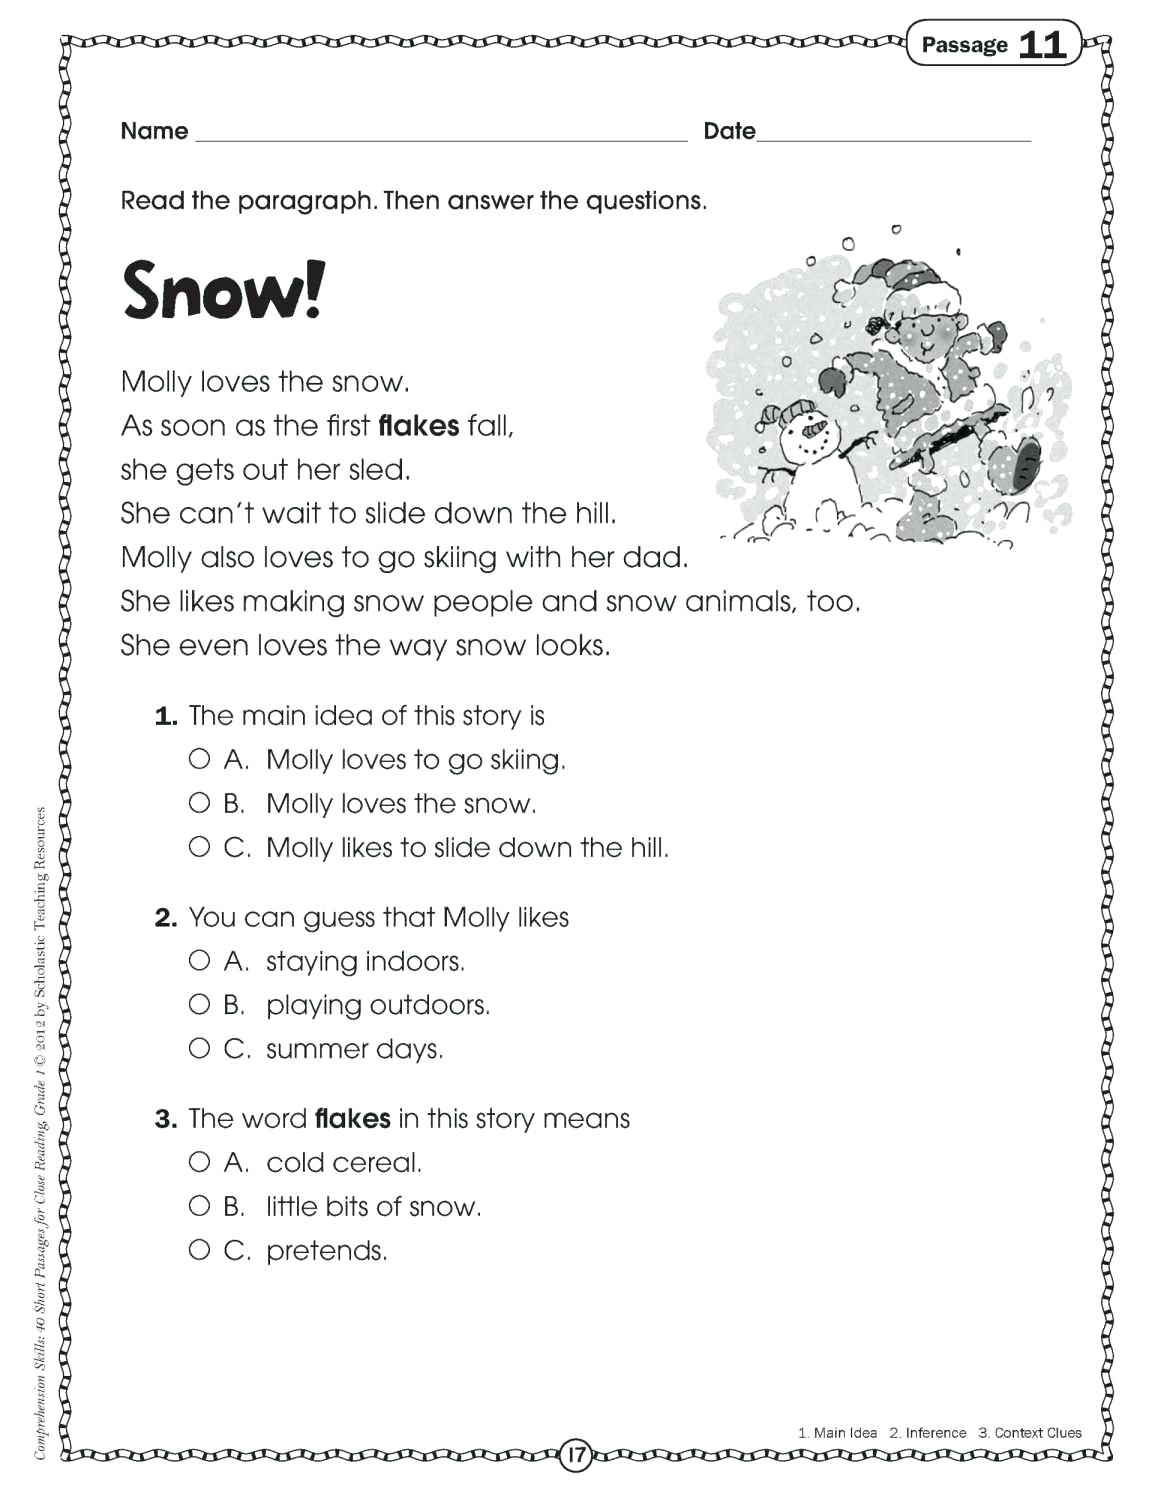 - Free Printable Reading Comprehension Worksheets For 2nd Grade لم